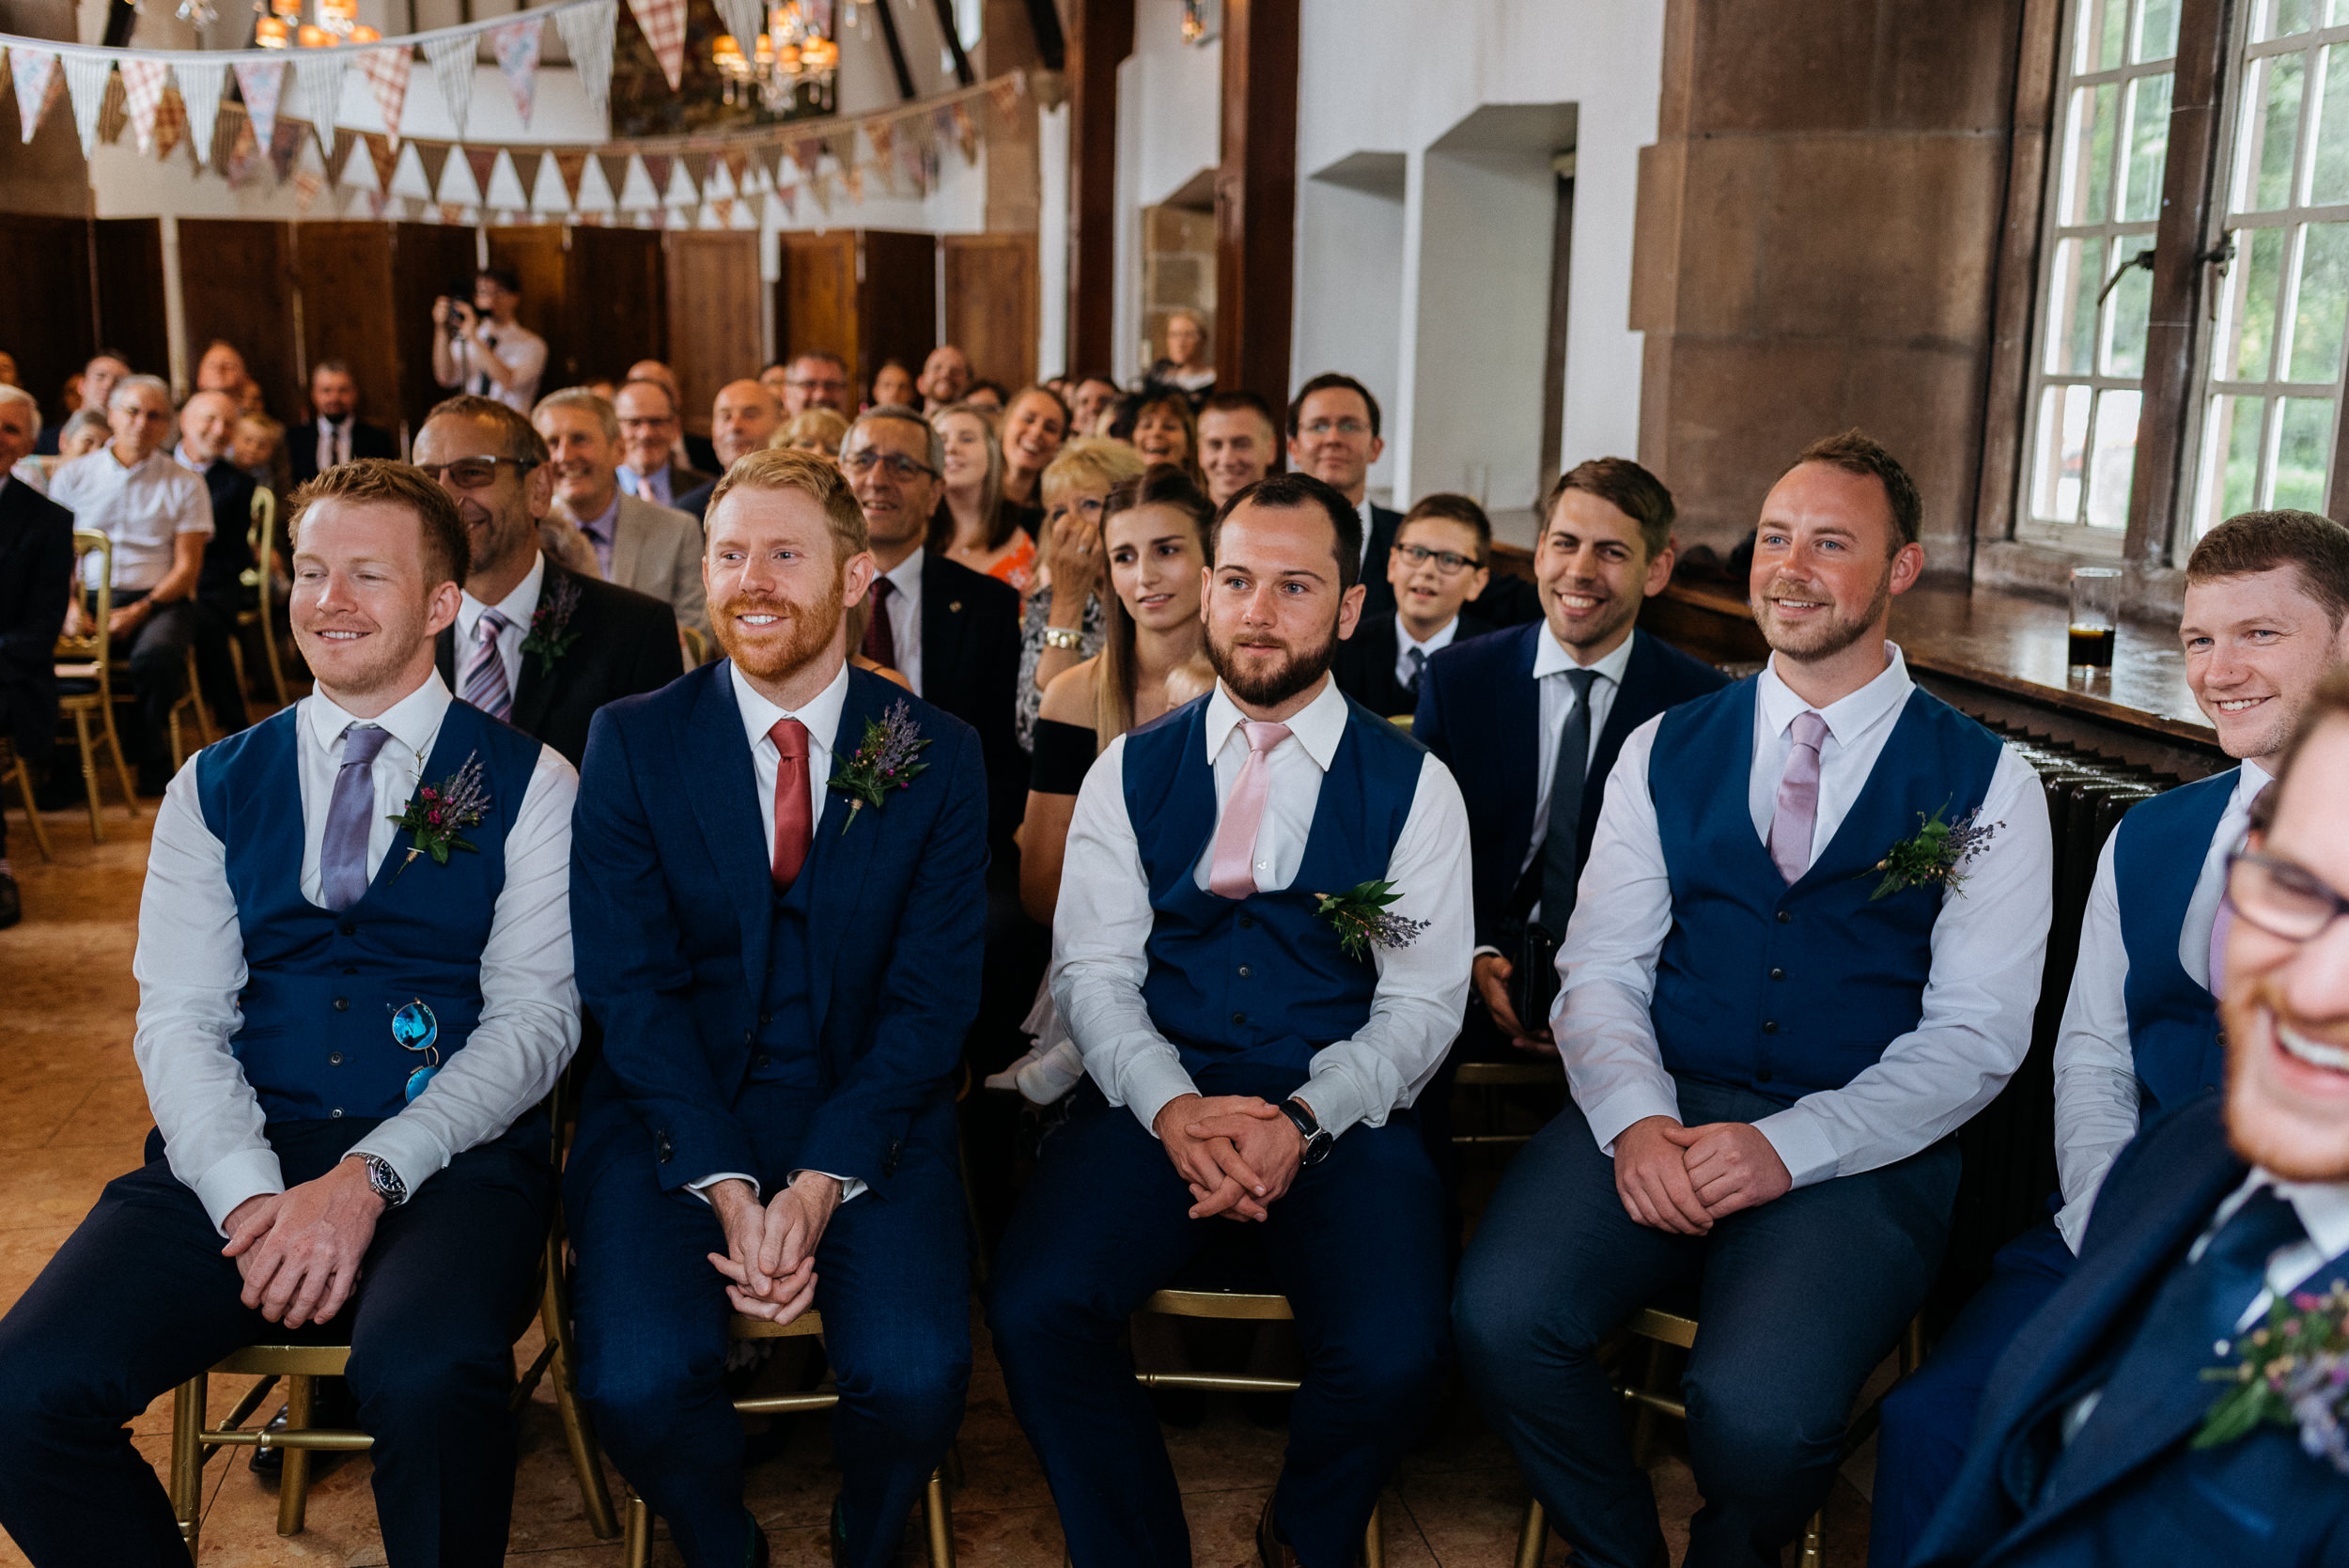 Groomsman at the wedding ceremony at Risley Hall